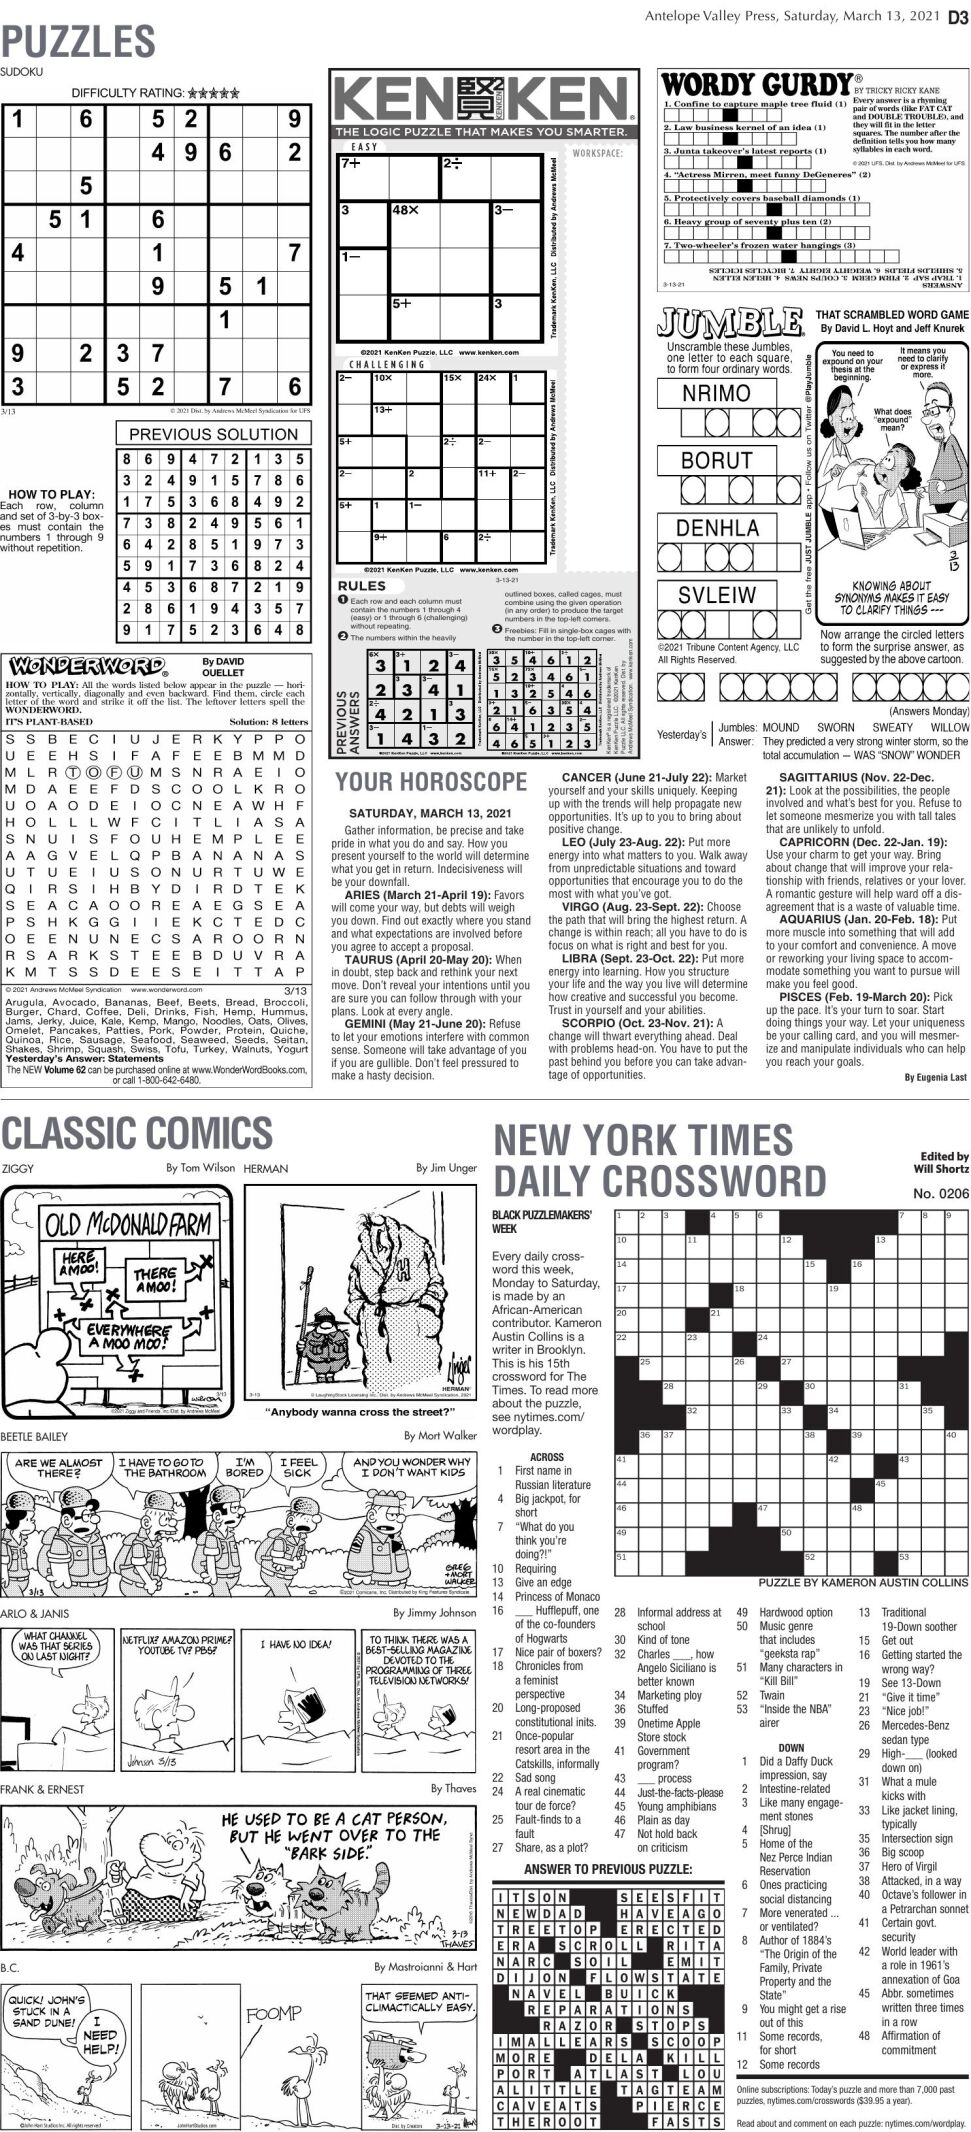 Puzzles, March 13, 2021